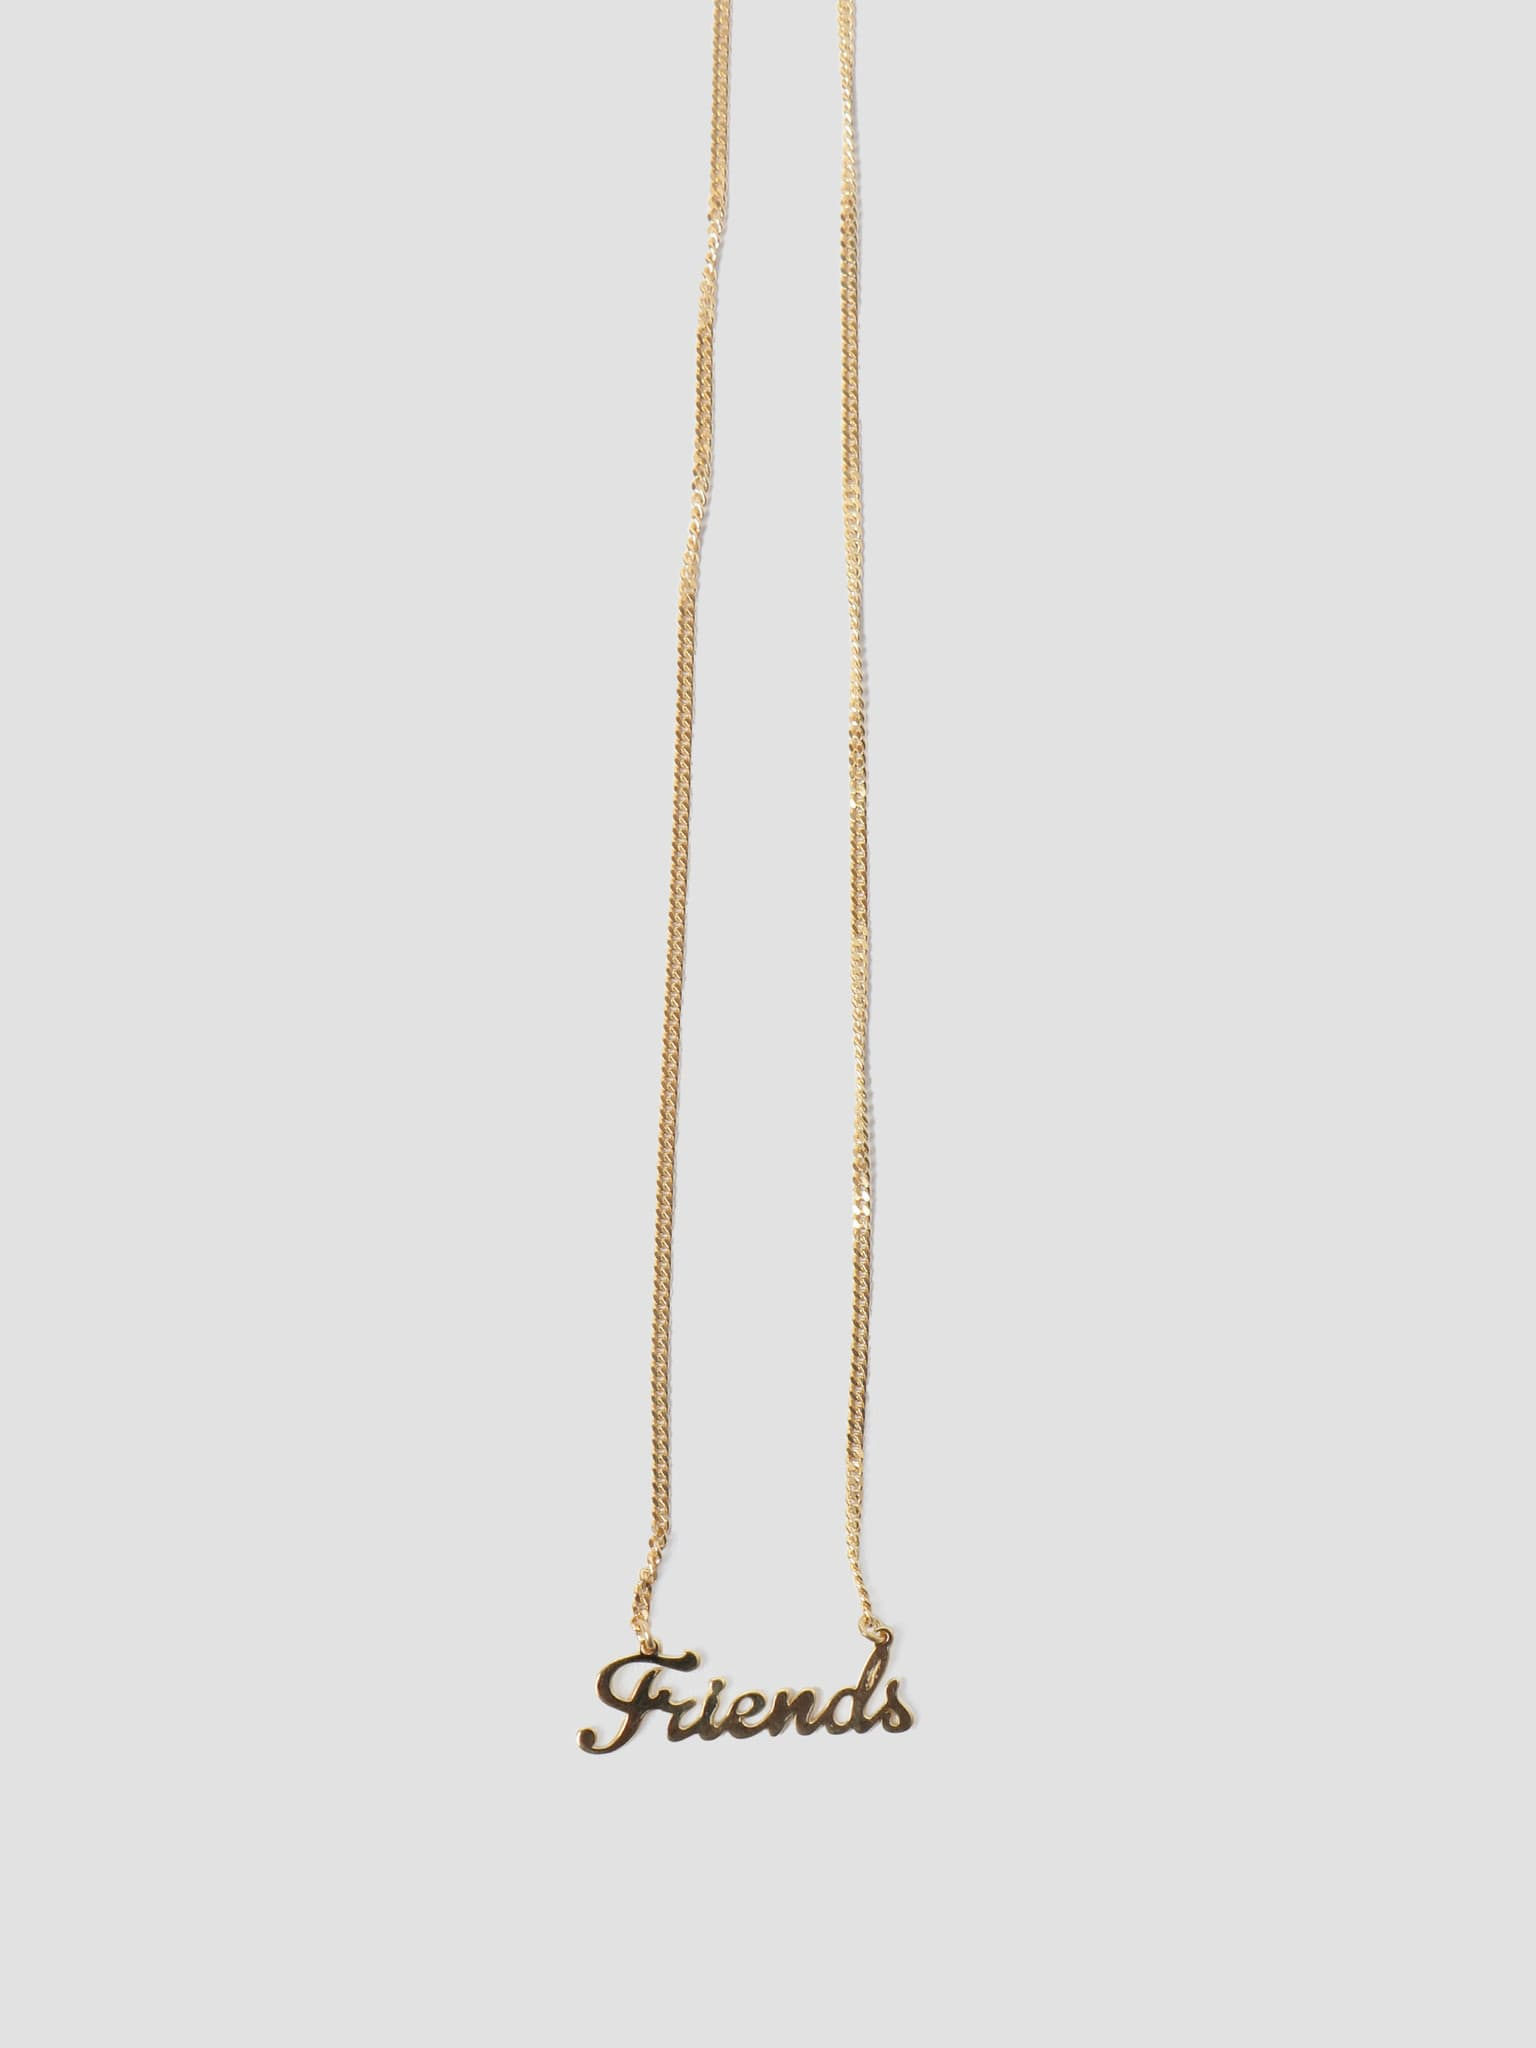 by Freshcotton Friends Necklace 55cm 14K Gold Plated